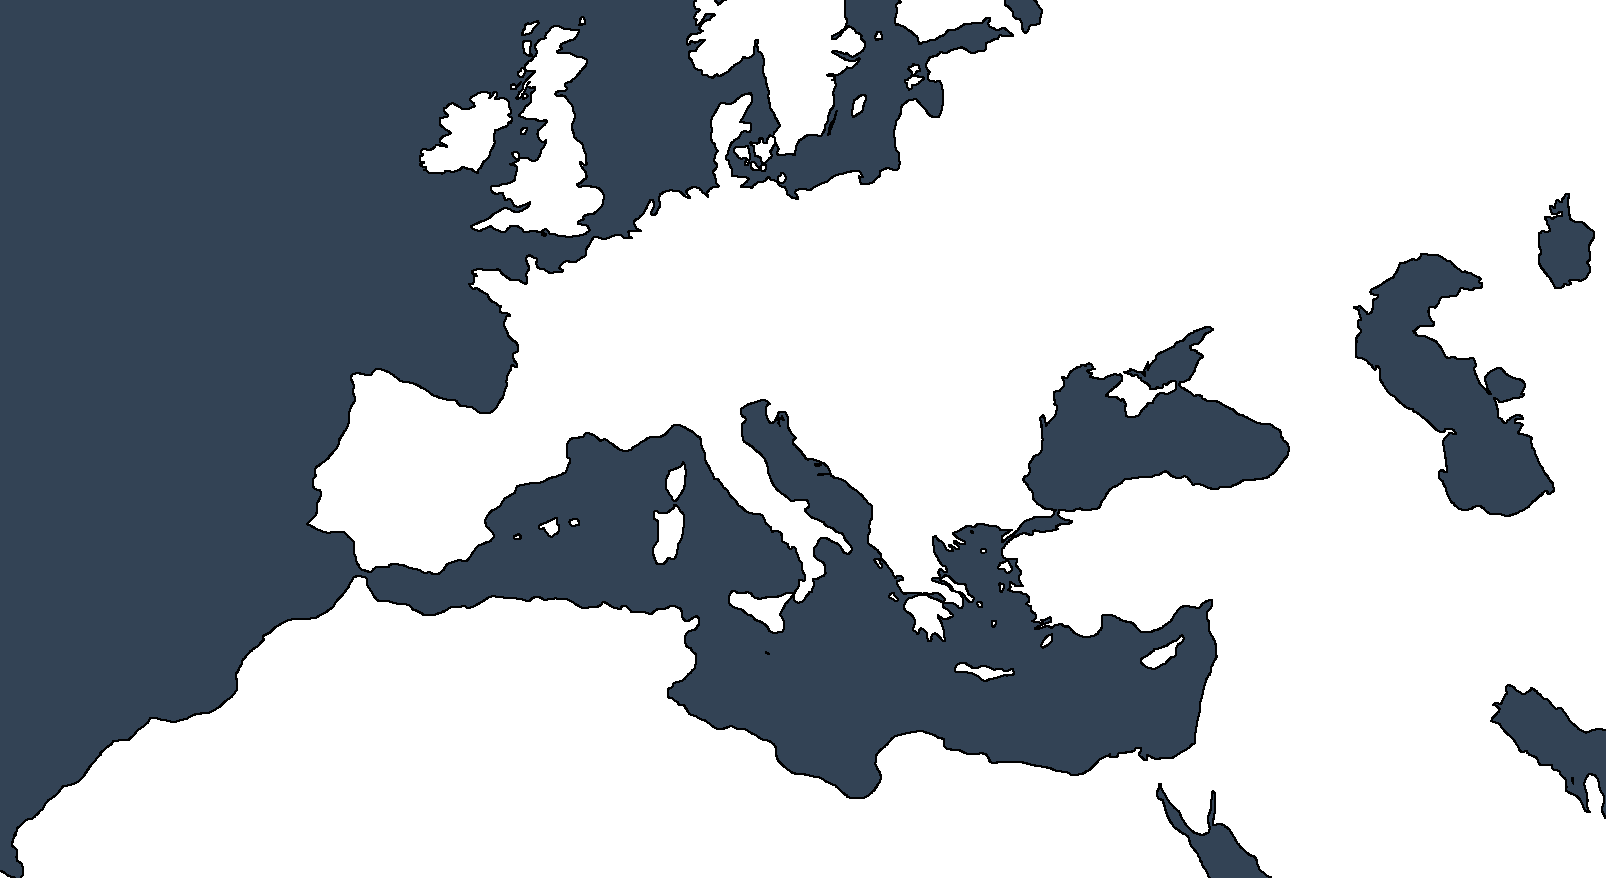 Map of Europe and North Africa by Marauder-M on DeviantArt